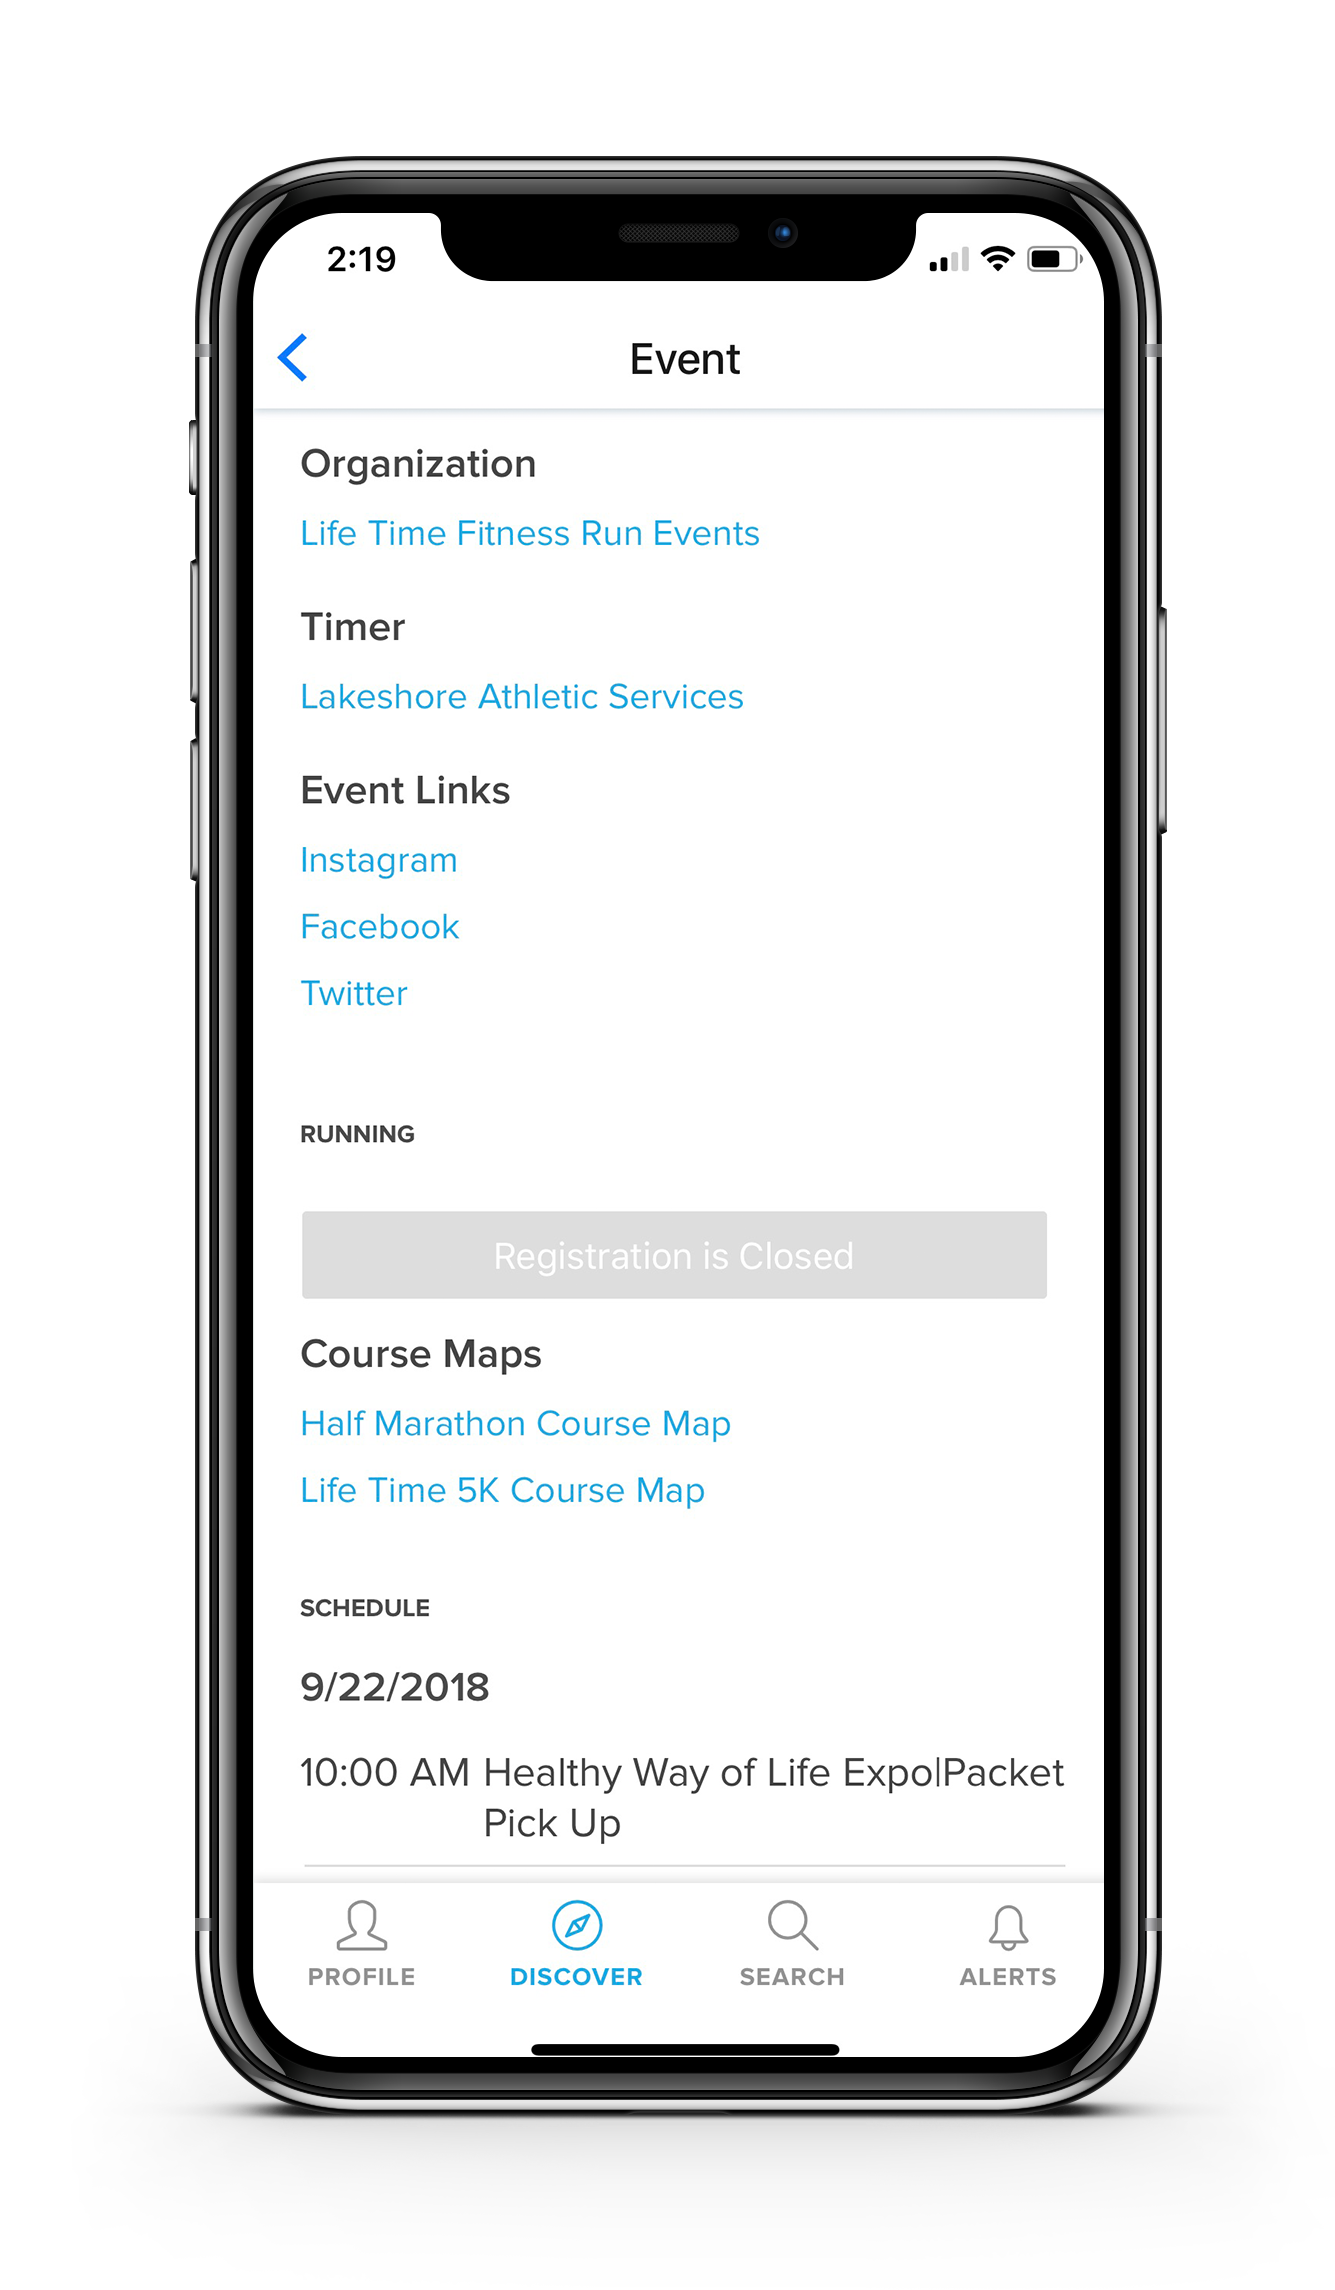 SHARE   Event information such as schedules, course maps and more!